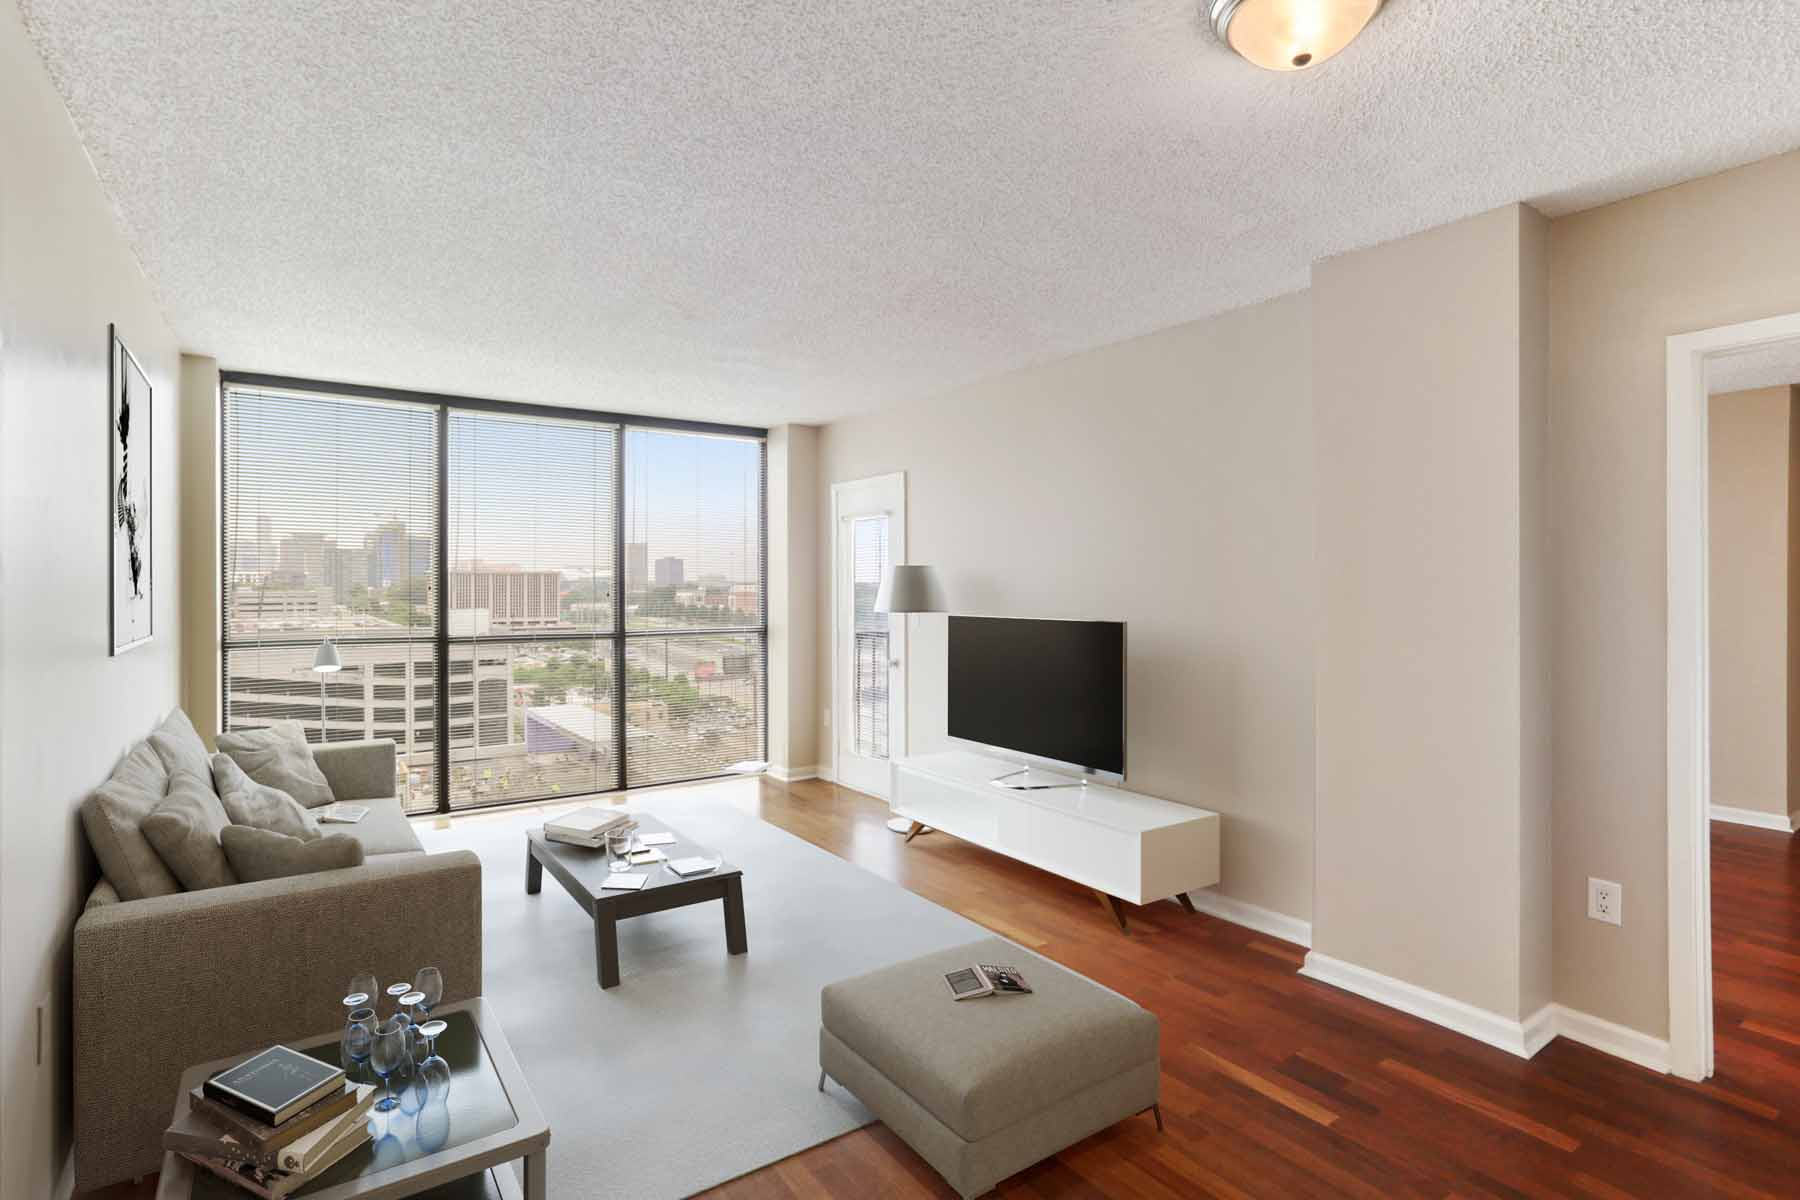 Condominium for Sale at Intown Living at 1280 West 1280 W Peachtree Street 1606 Atlanta, Georgia 30309 United States